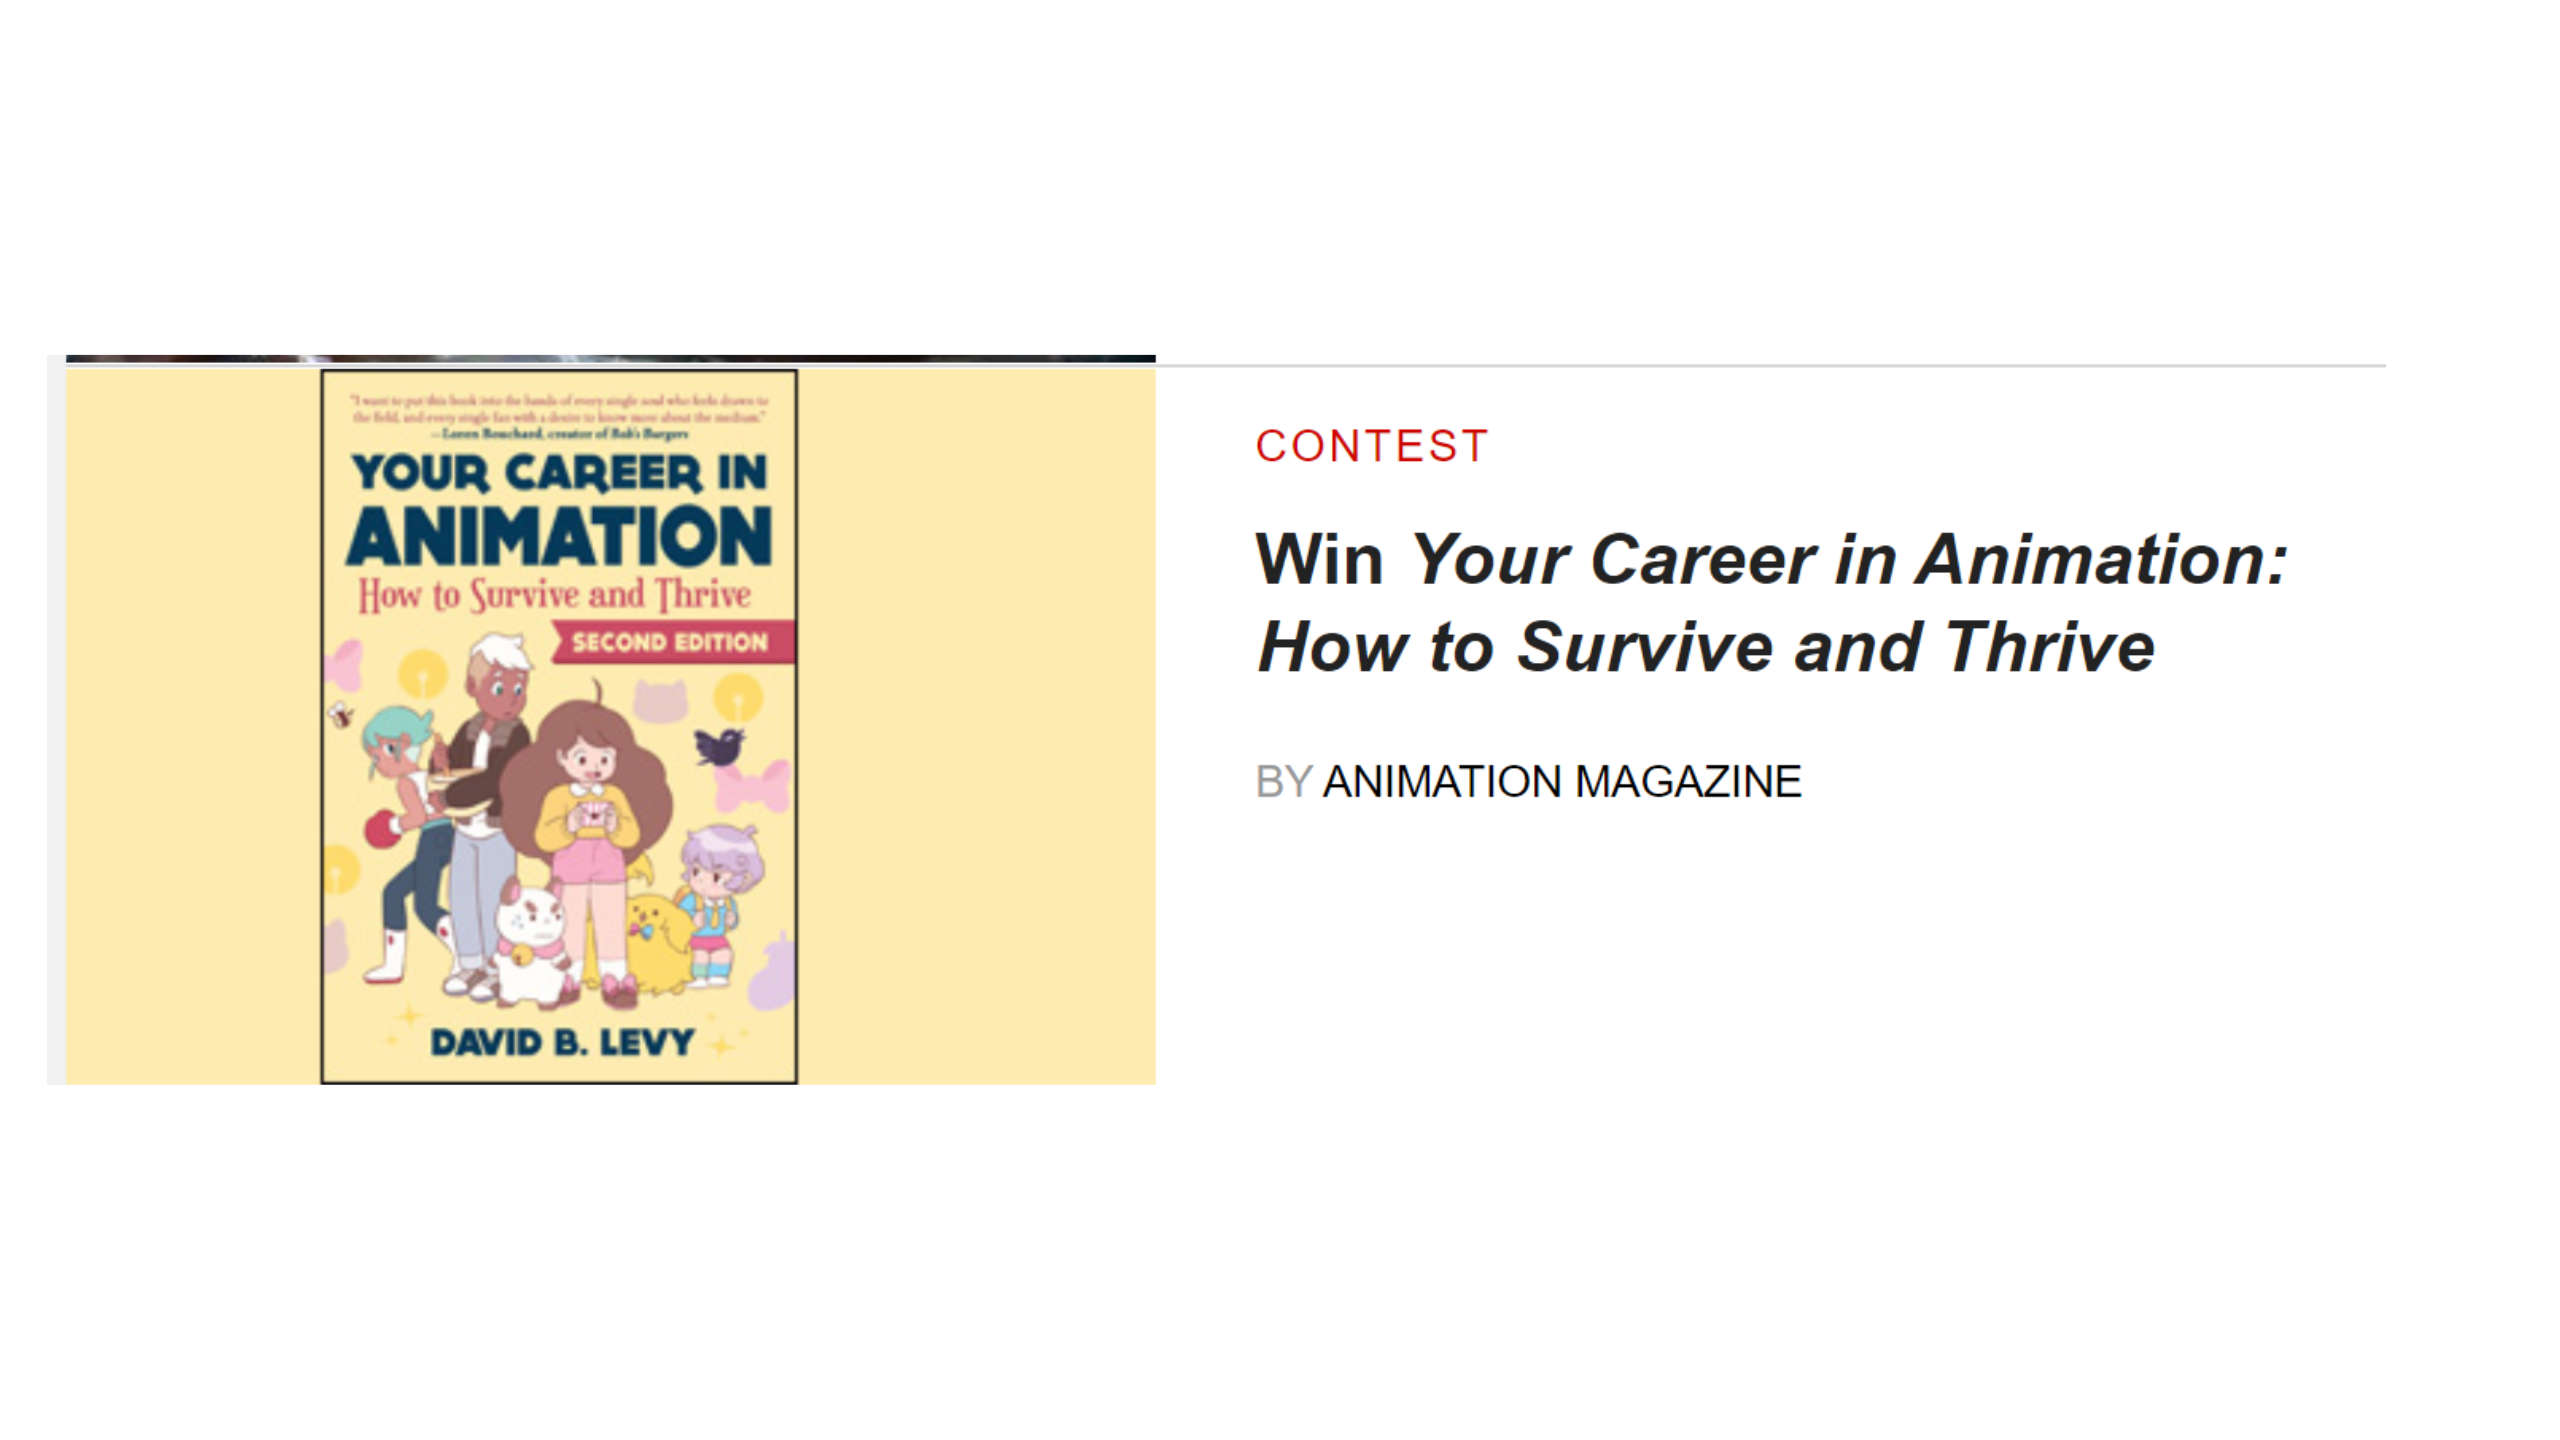 Animation-magazine-contest-your-career-in-animation-by-David-B-Levy